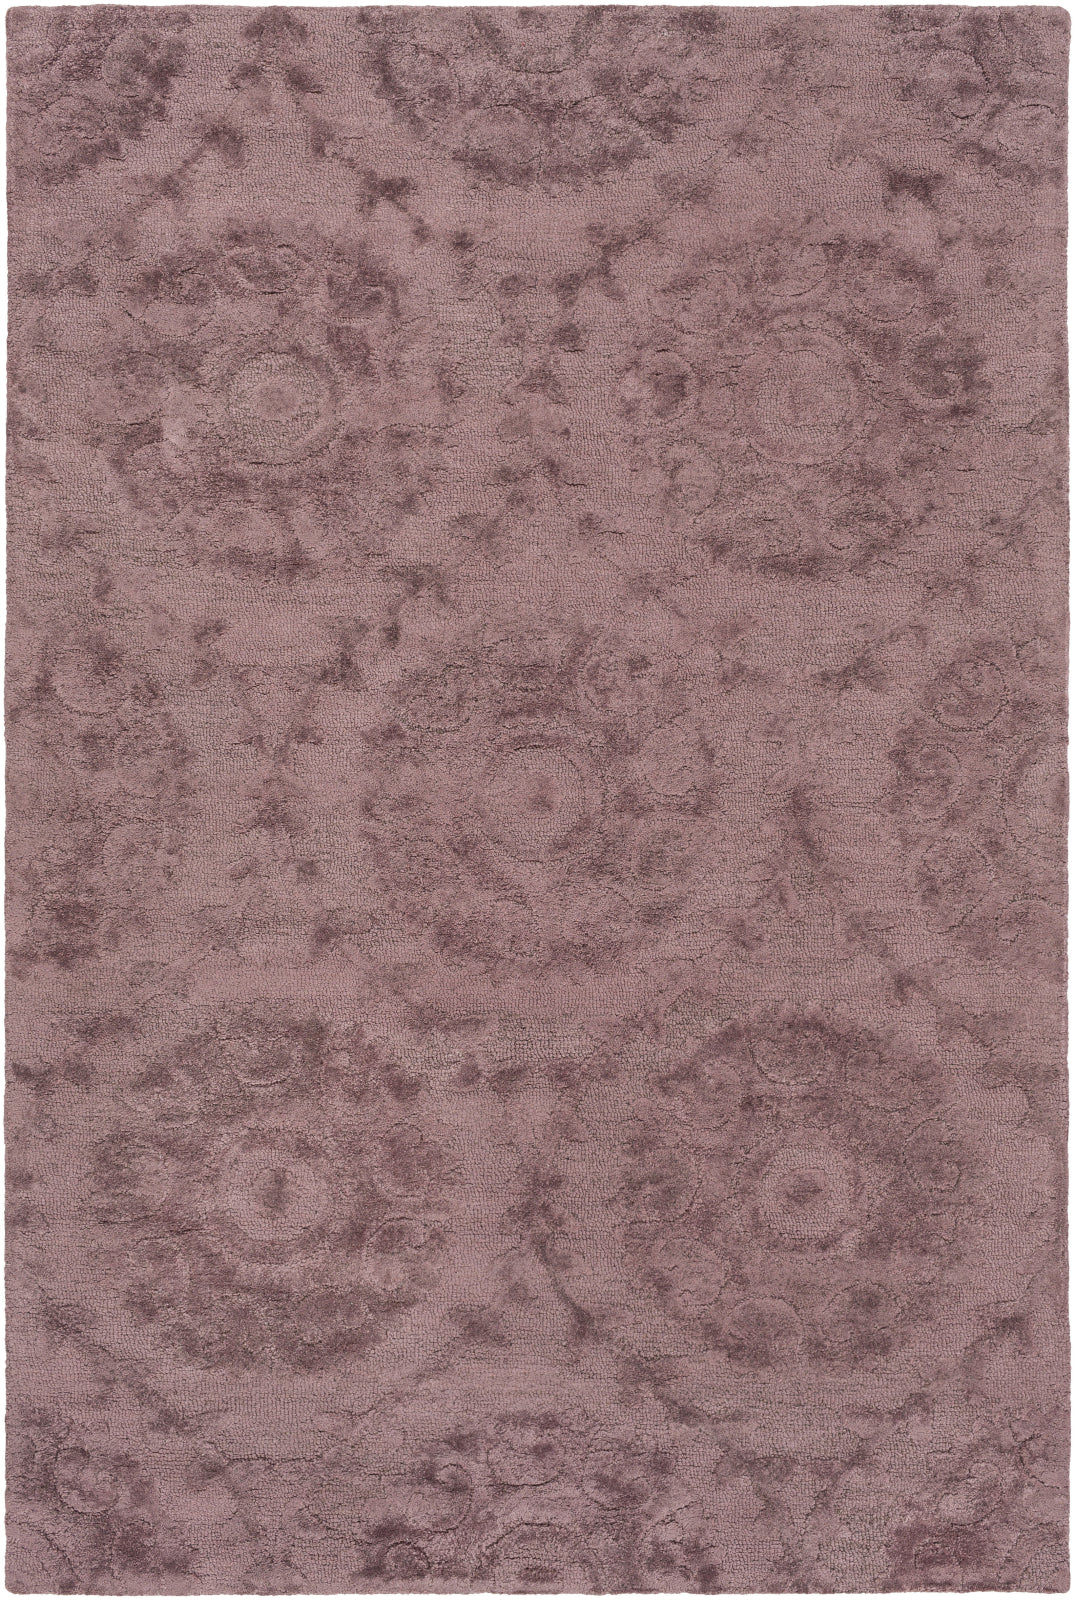 Surya Juliette JUL-9001 Area Rug main image